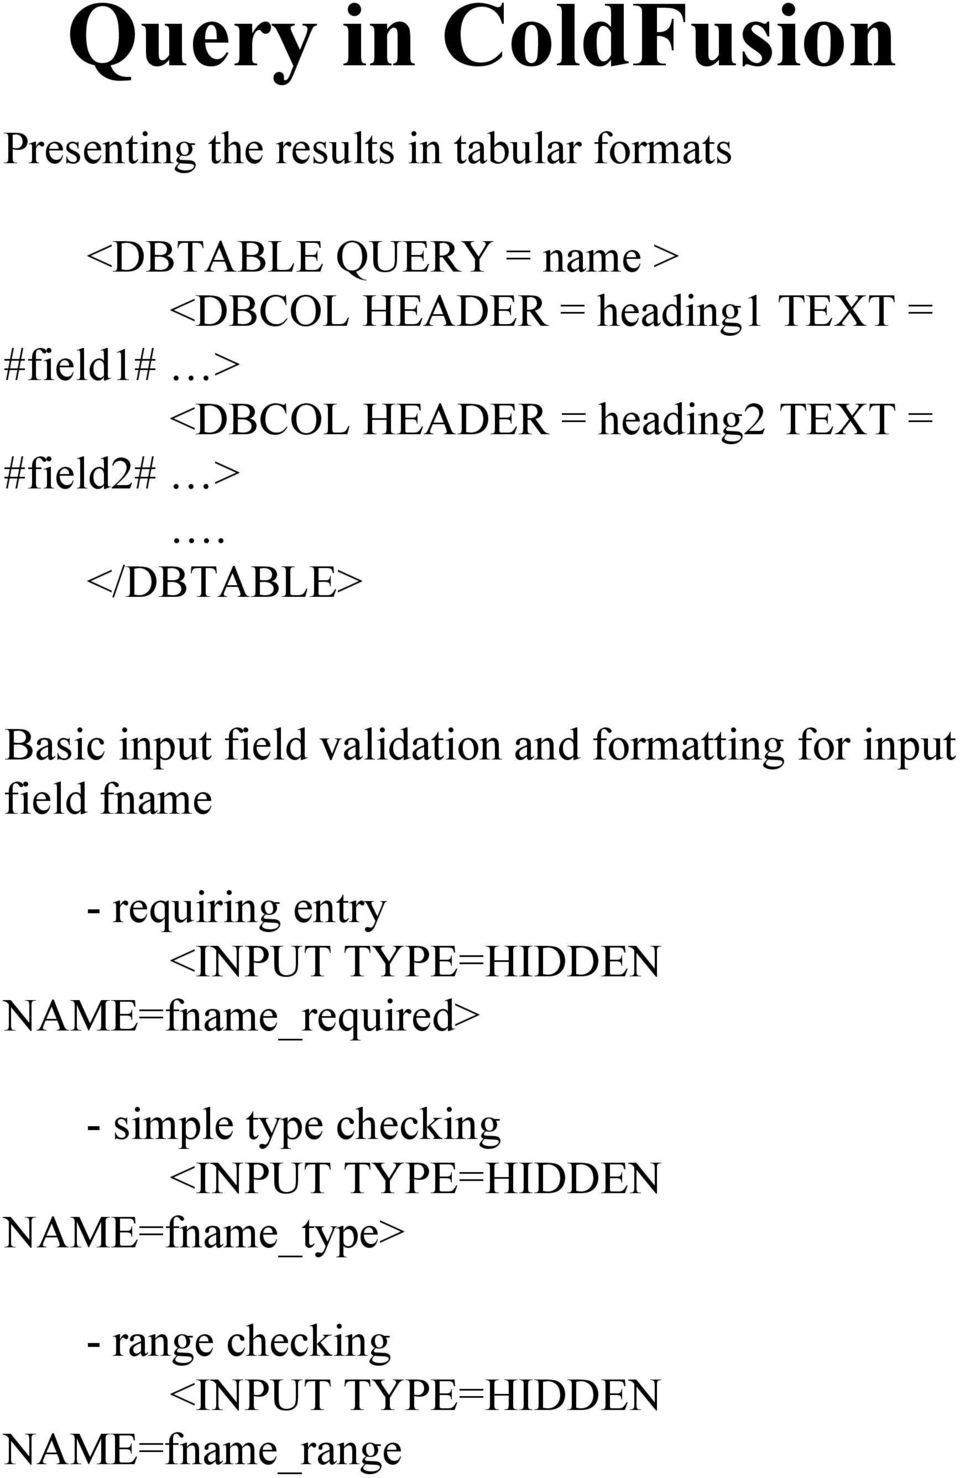 </DBTABLE> Basic input field validation and formatting for input field fname - requiring entry <INPUT